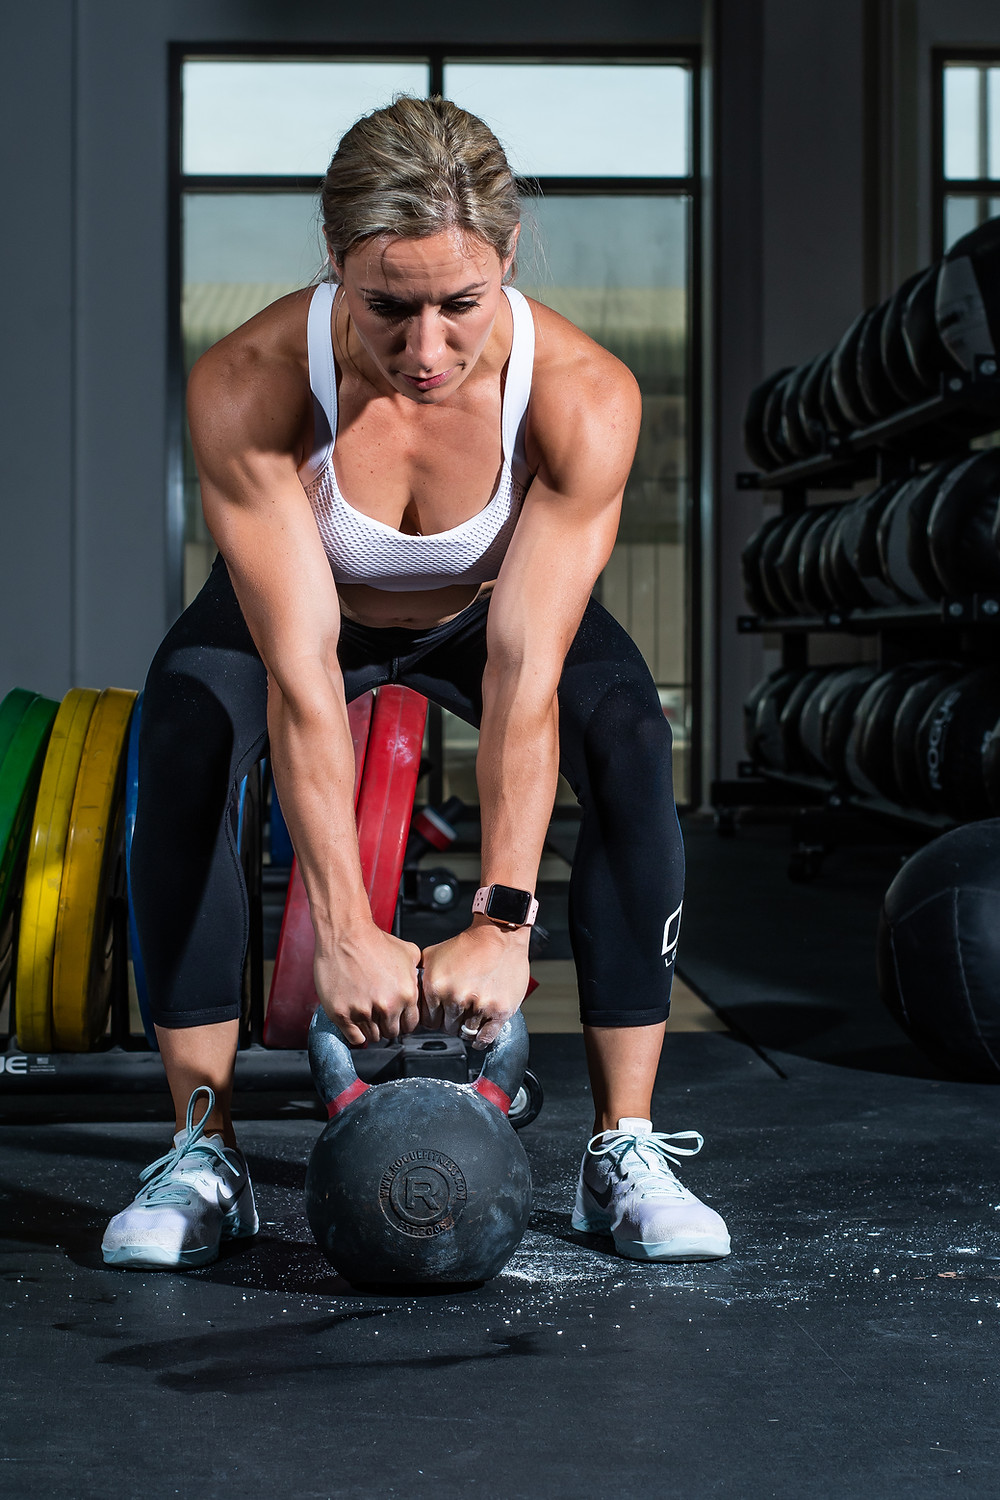 a woman about to perform a kettlebell swing.